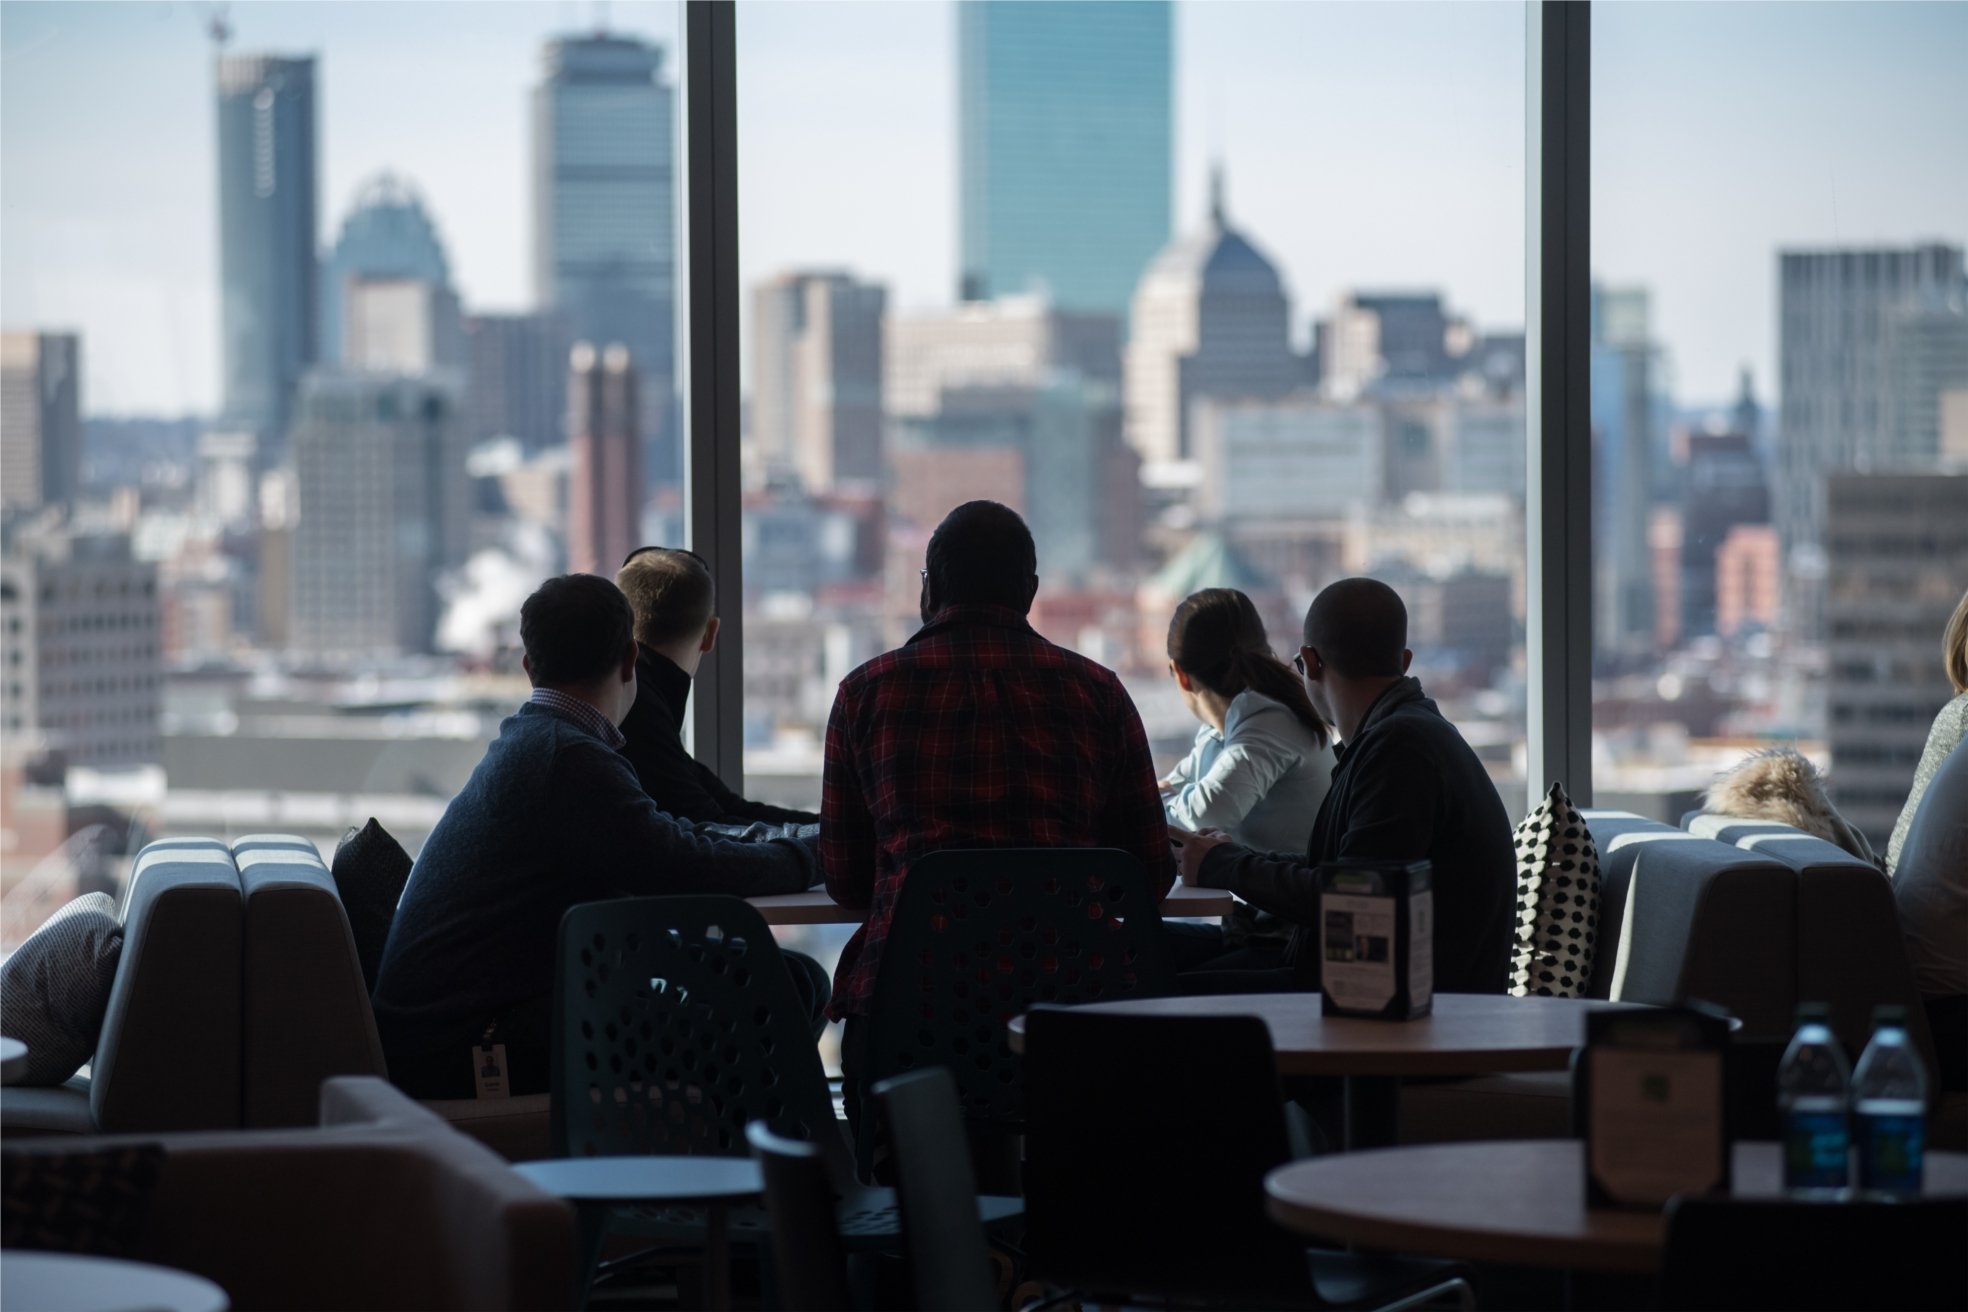 PTC's global headquarters, located at 121 Seaport Blvd. in the heart of Boston's Innovation District, offers panoramic views of the waterfront and the city. This is the backdrop to innovation and creativity.